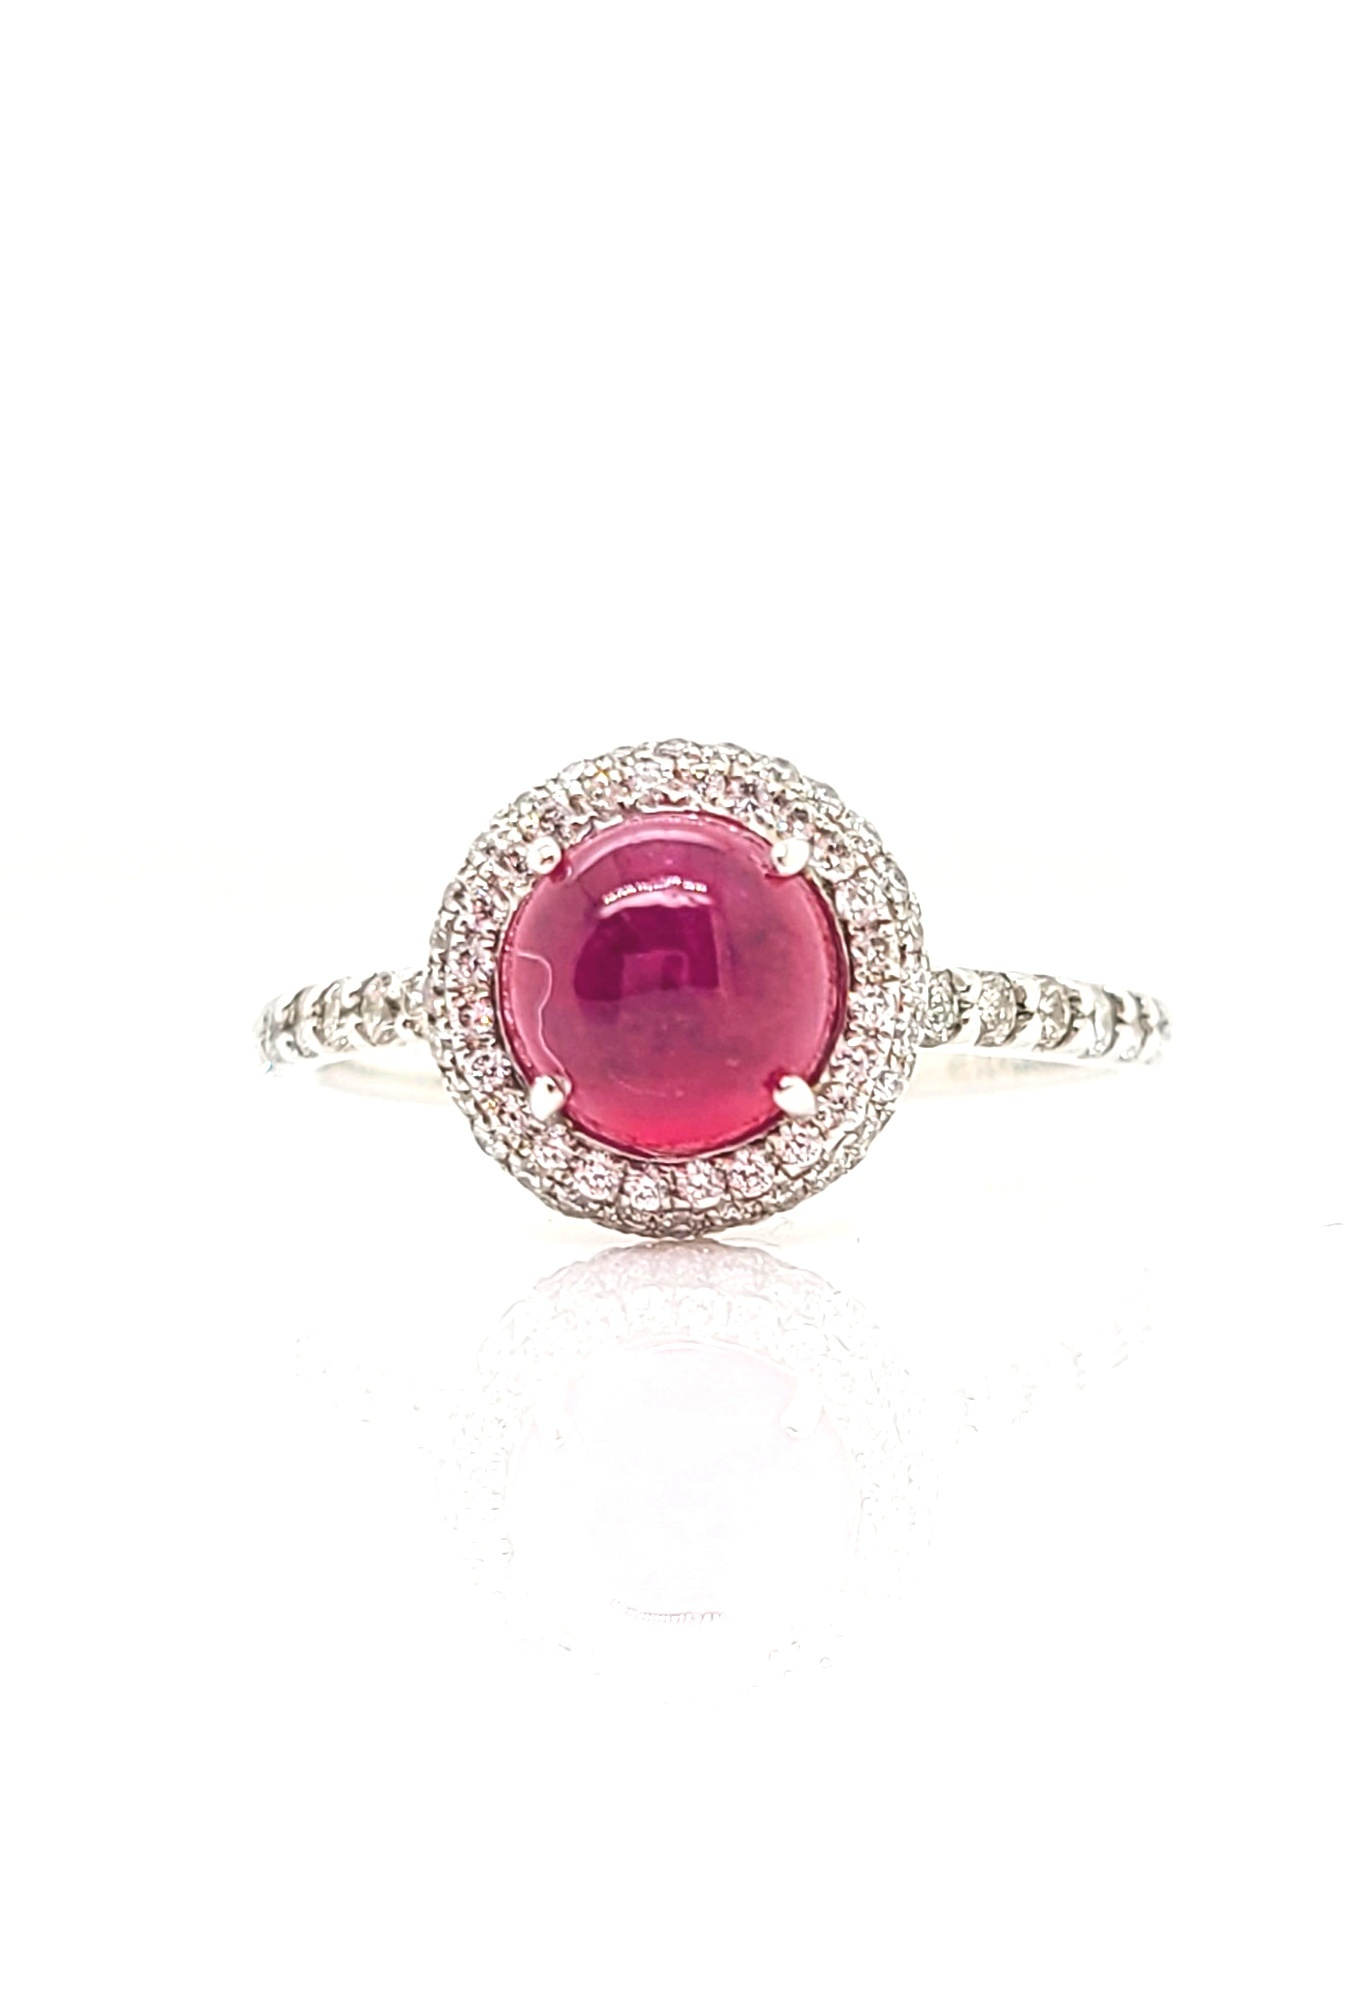 14k White Gold Ruby Cabochon Ring with Pave Diamond Halo